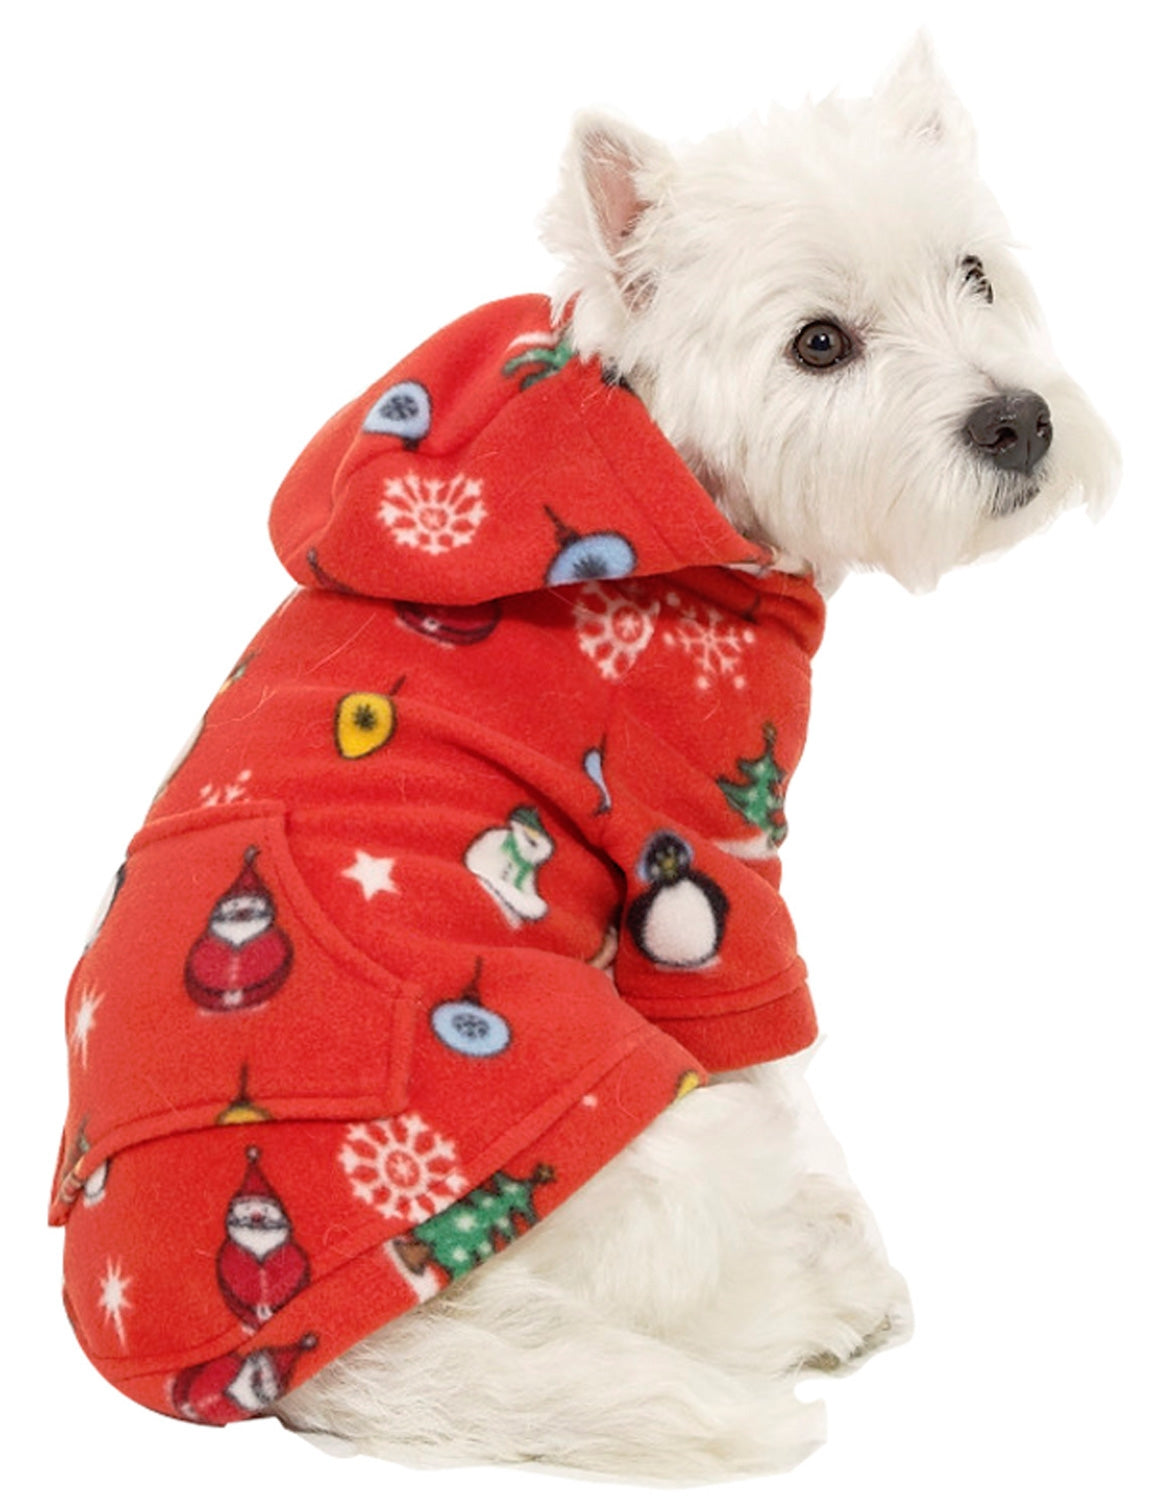 Christmas Pajamas For Dog.Holly Jolly Christmas Pet Pajamas Pet Pjs Dog Pajamas